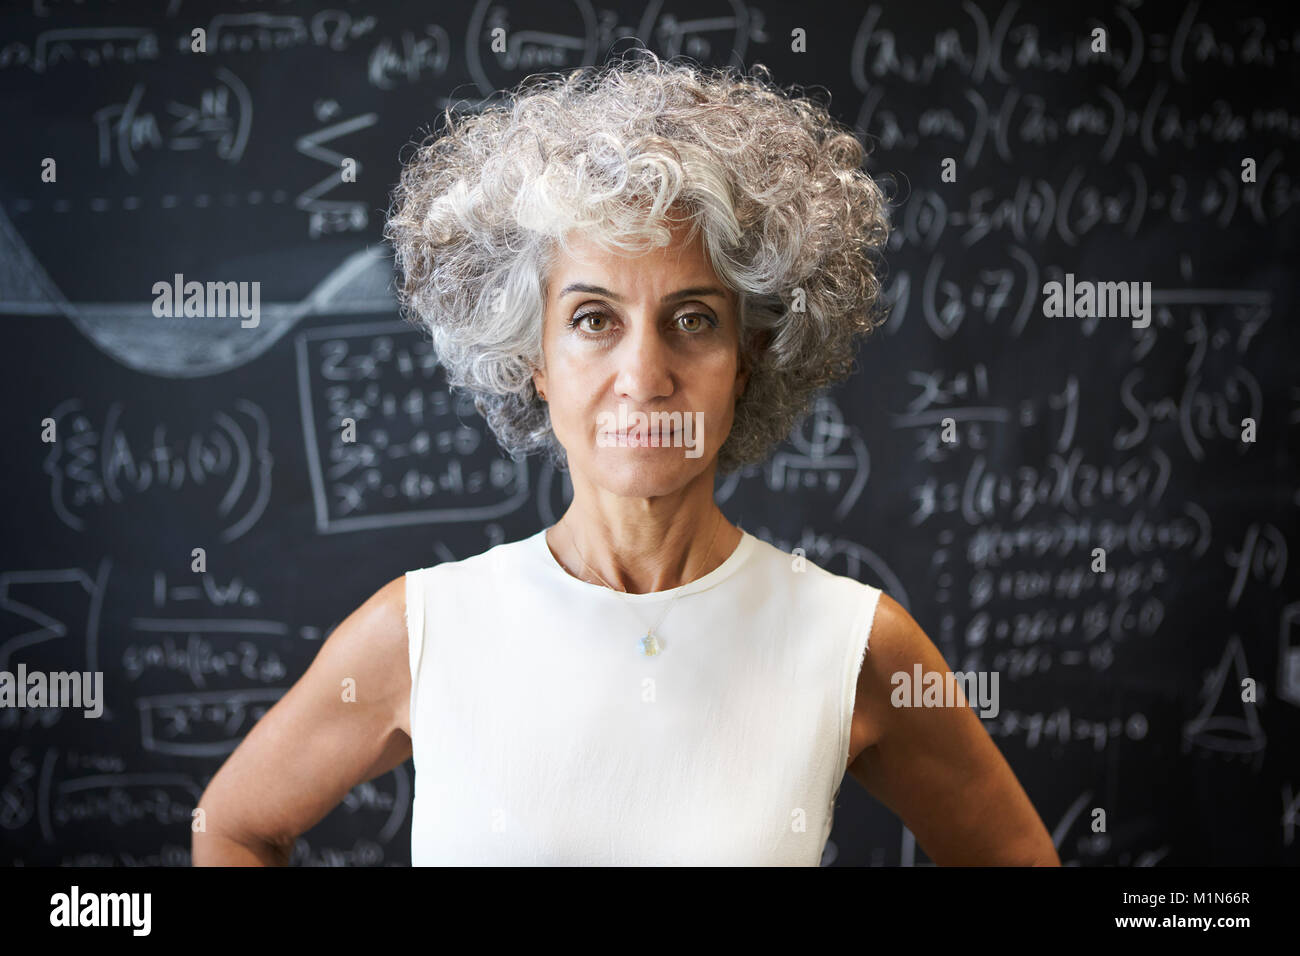 Universitaire d'âge moyen woman standing in front of blackboard Photo Stock